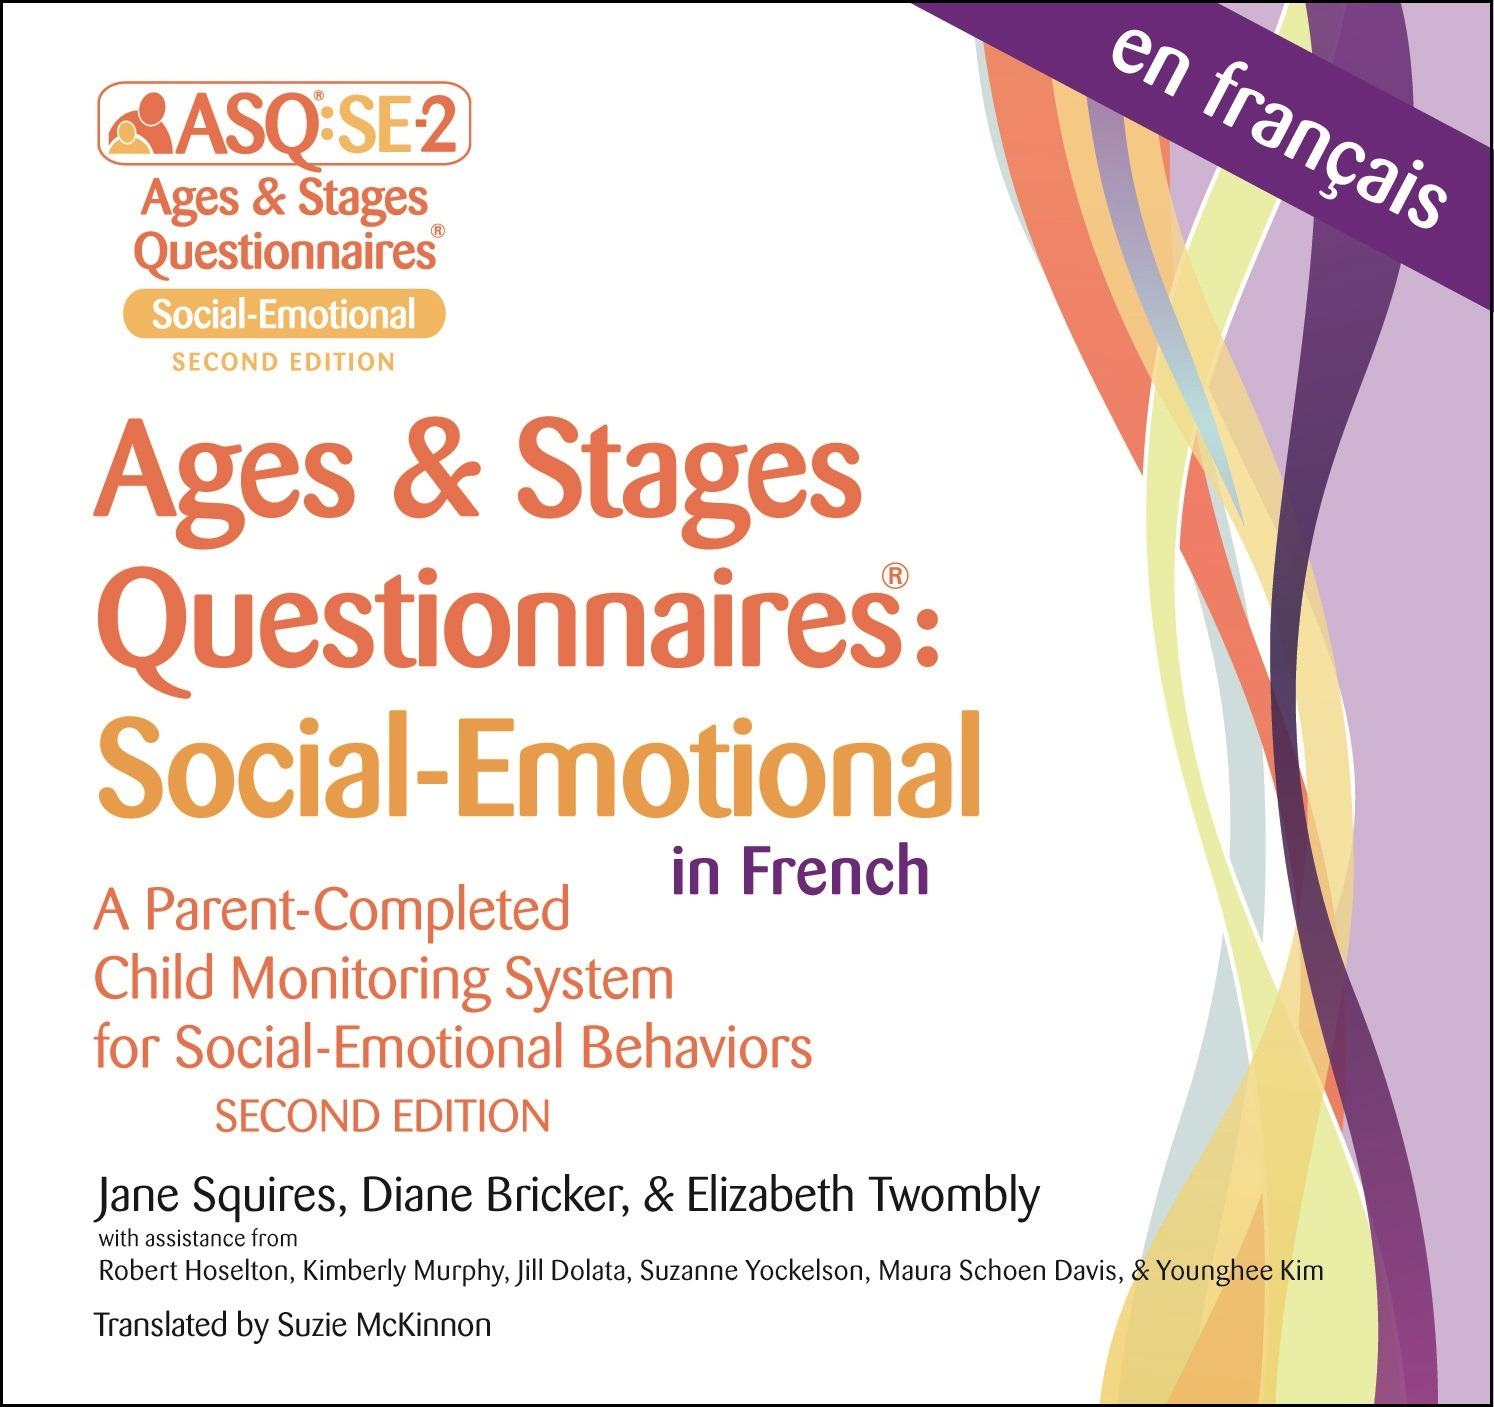 ASQ:SE-2 - Ages and Stages